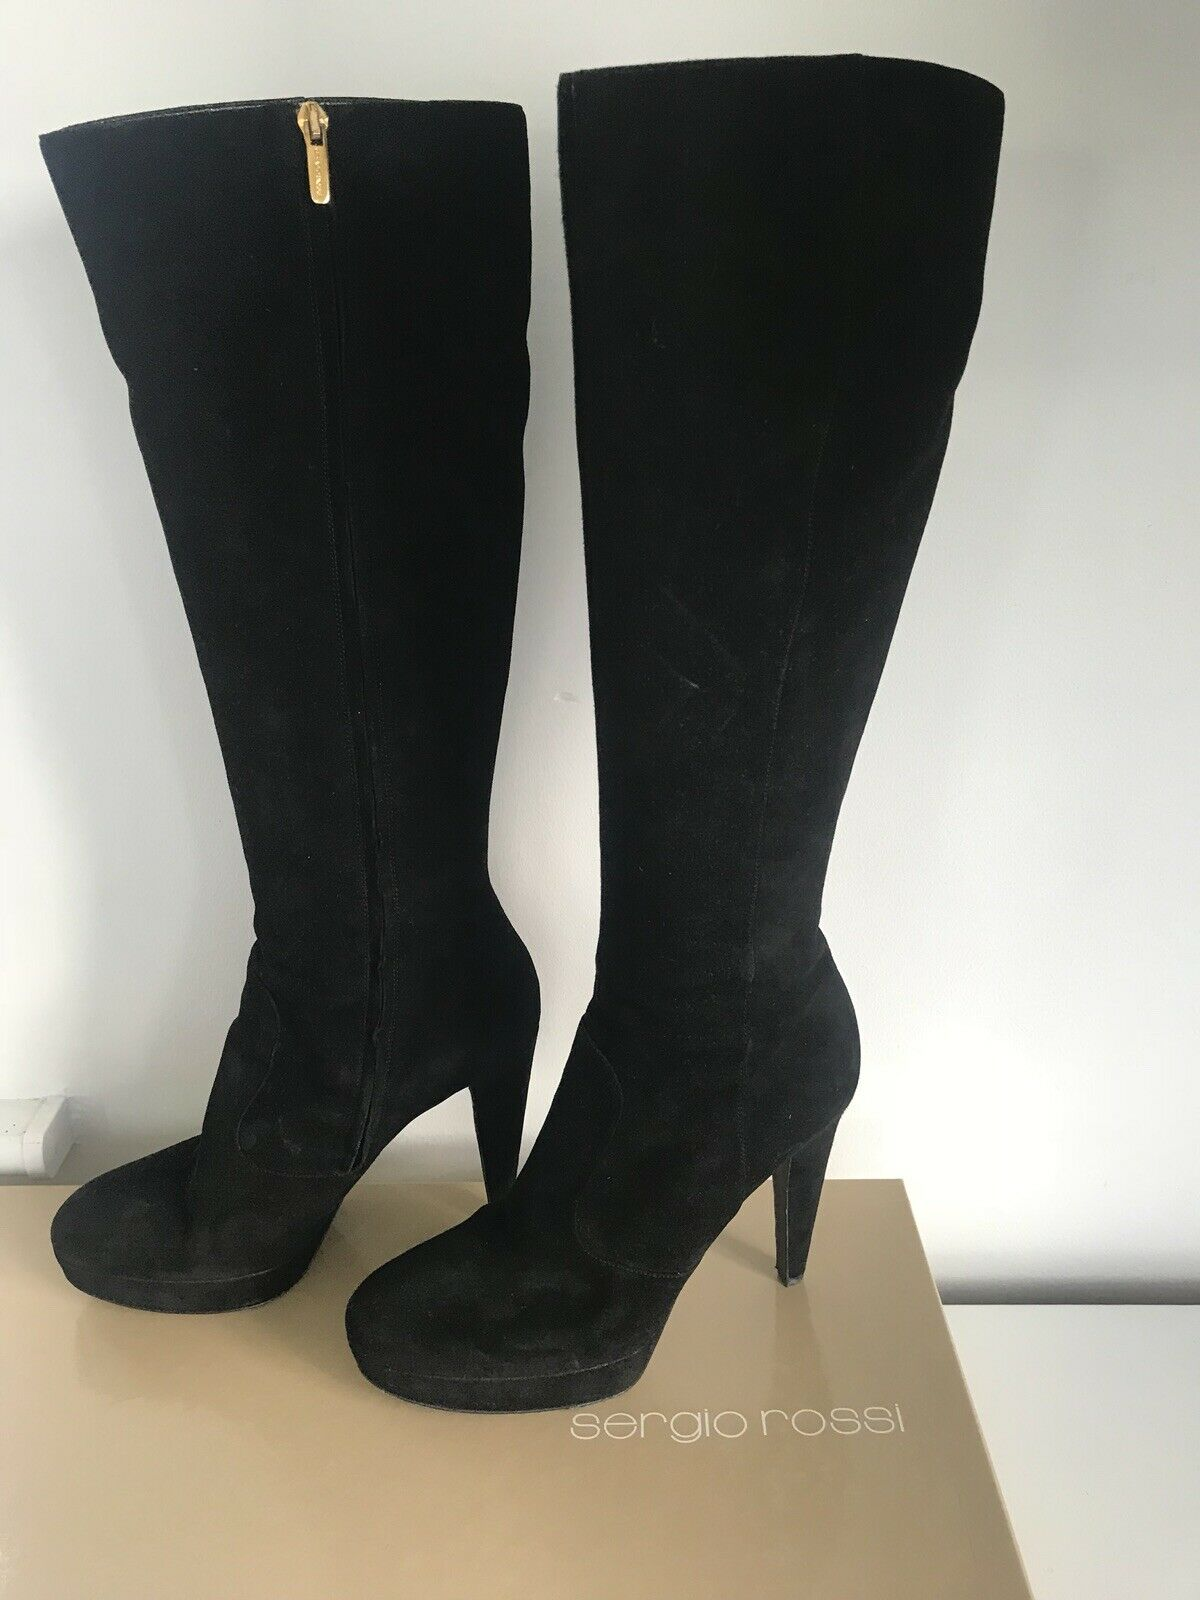 Sergio Rossi Black Suede Knee High Boots Size 39